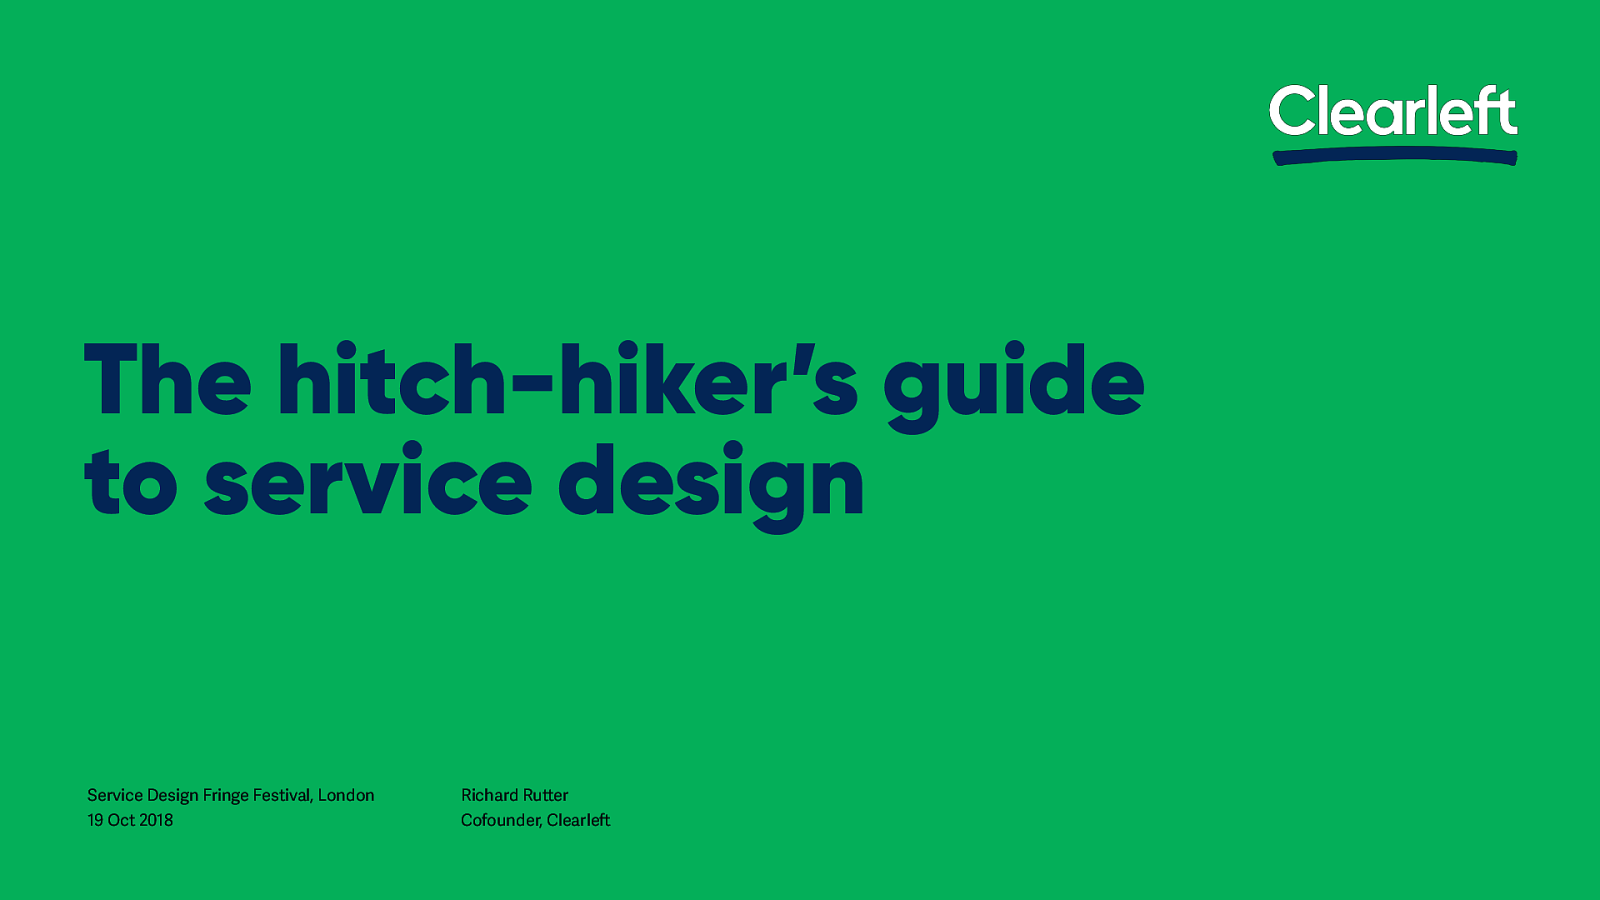 A hitch-hiker's guide to service design